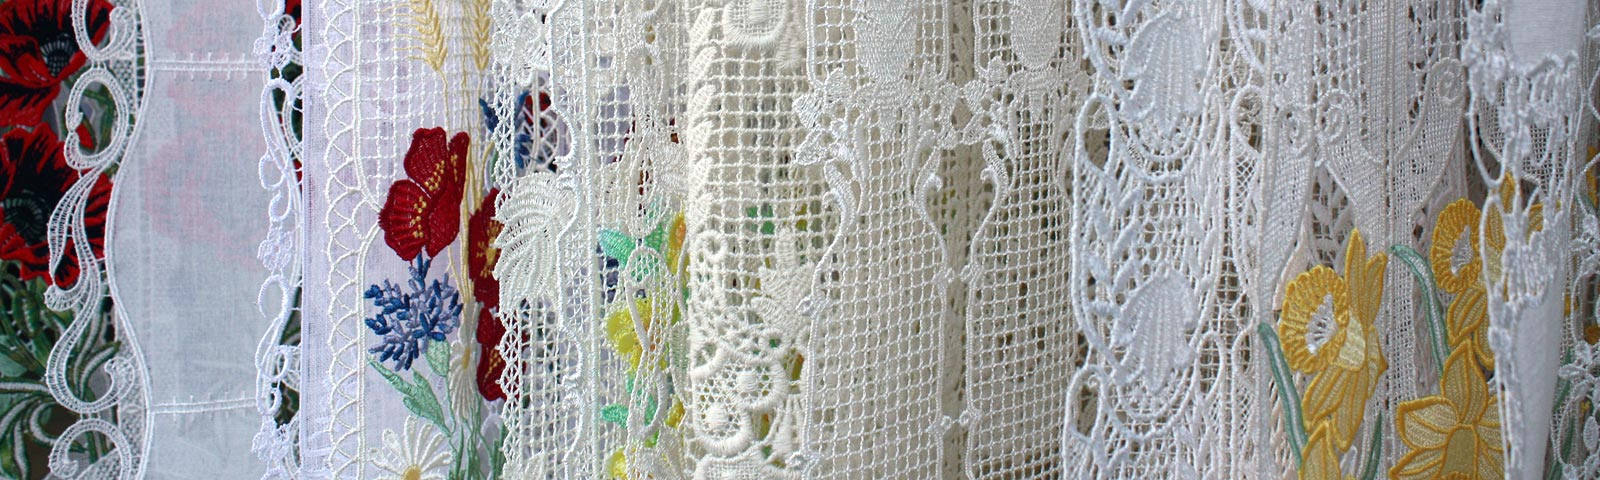 french lace kitchen curtains frigidaire package macrame cafe